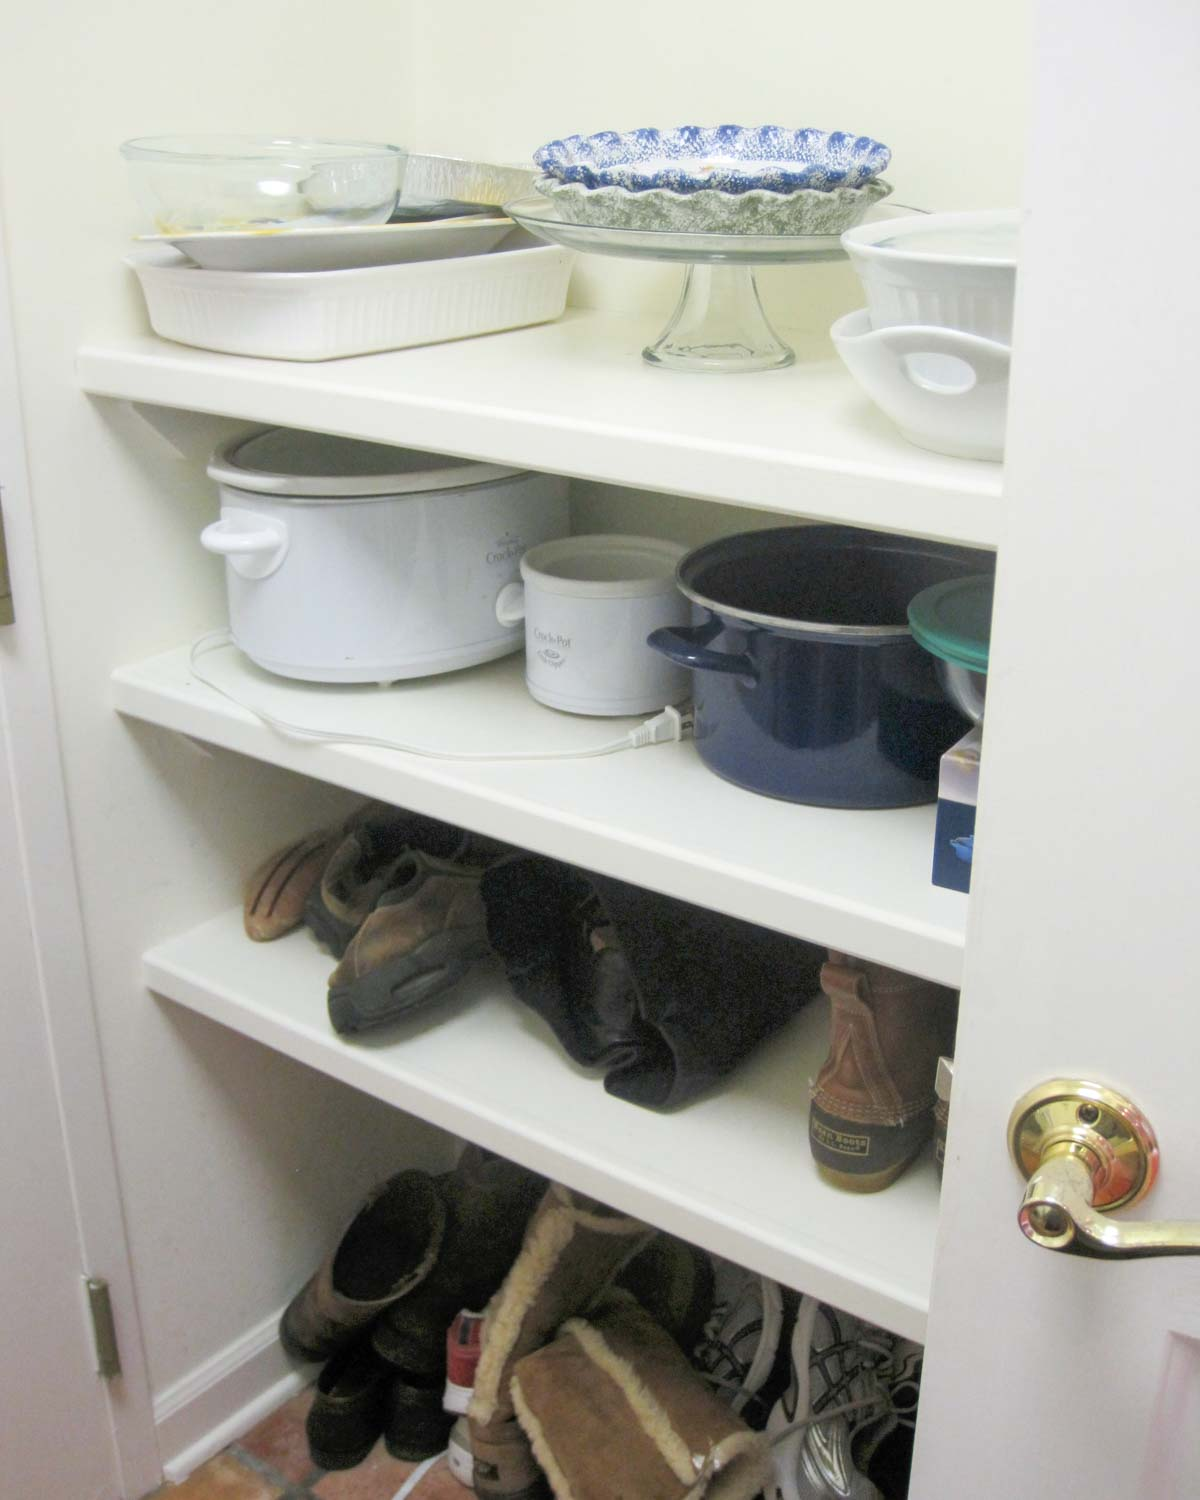 Home remodel: Laundry room before remodeling!